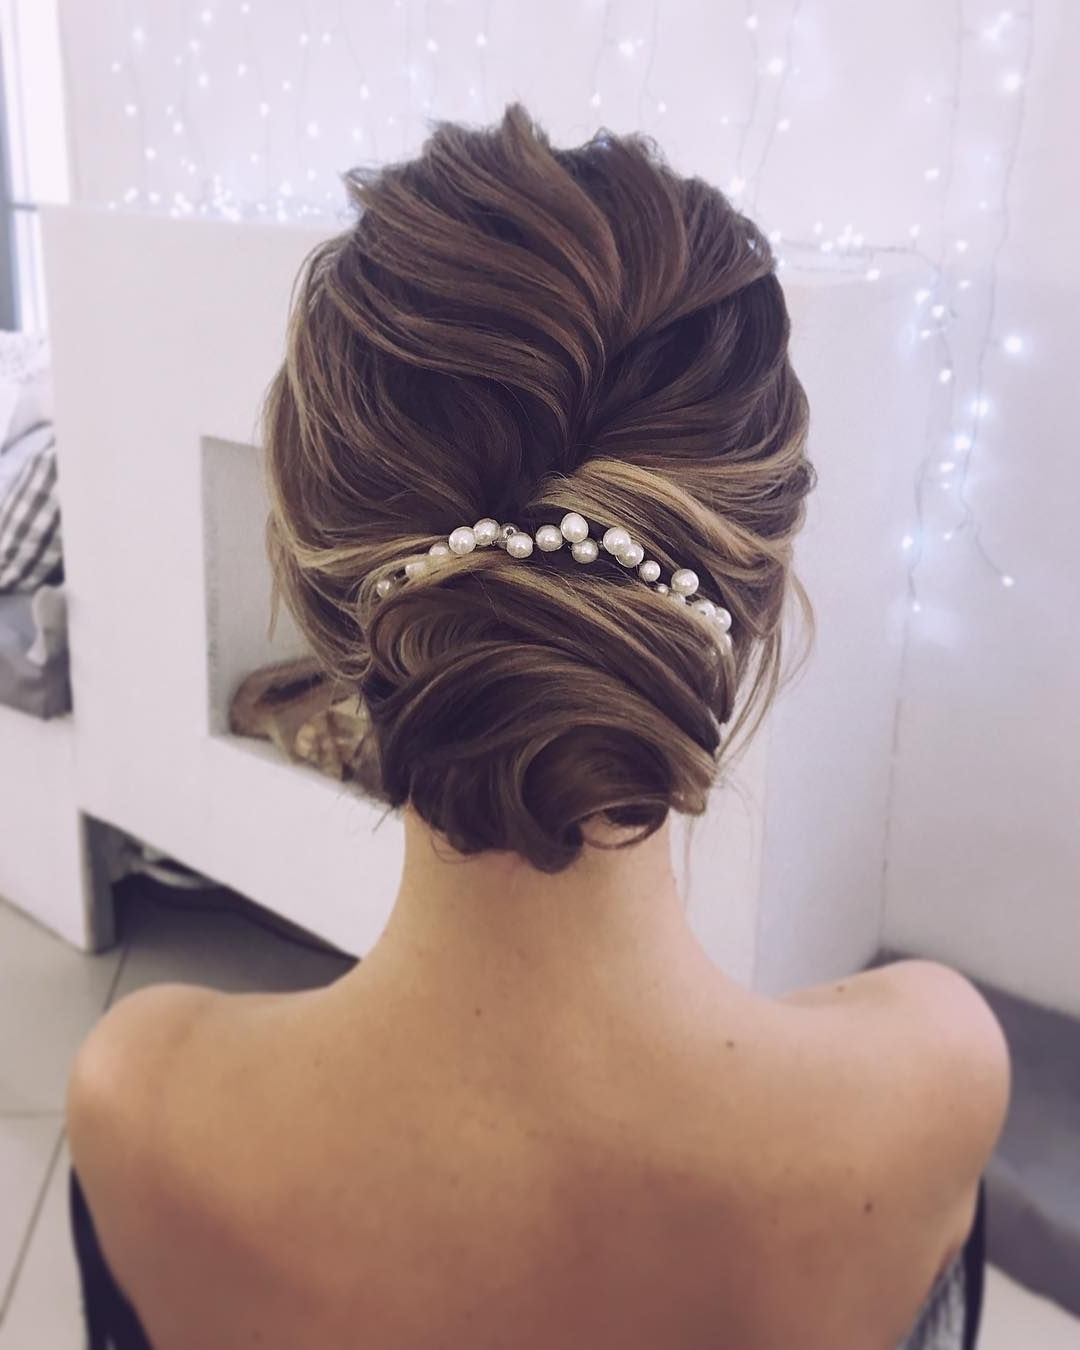 Most Popular Chignon Wedding Hairstyles Throughout Looking For Gorgeous Wedding Hairstyle? Classic Chignon, Textured (View 6 of 15)